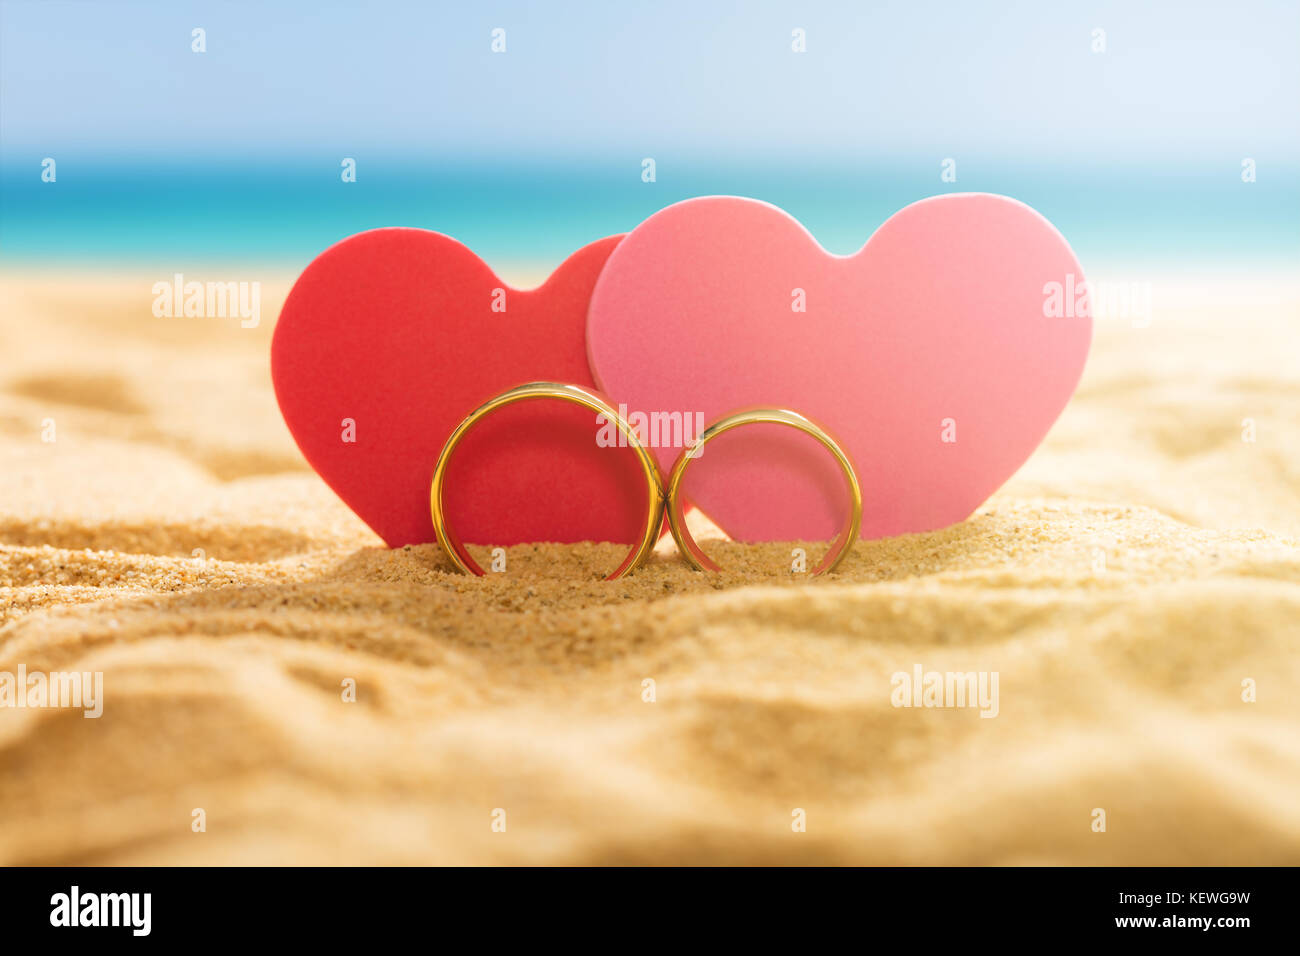 Wedding Rings On Background Sea Stock Photos & Wedding Rings On ...